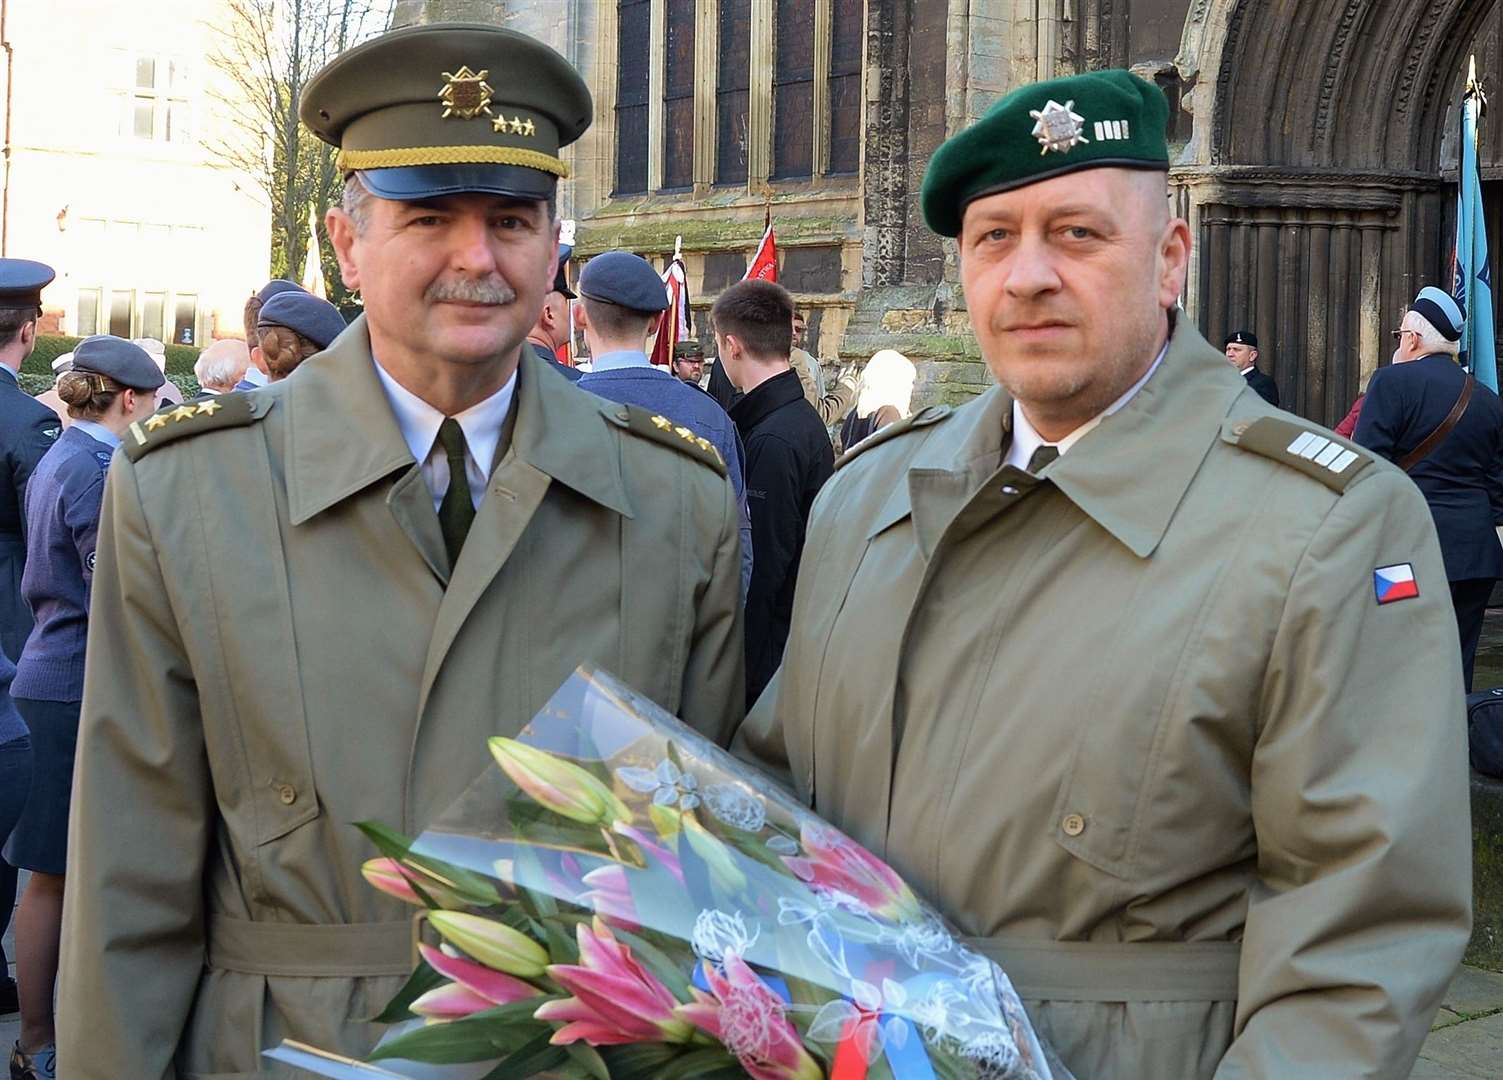 Colonel Jiri Niedoba, Czech Republic Defence Attache and his aide, Chief Warrant Officer Tomas Kaspar. (28526885)